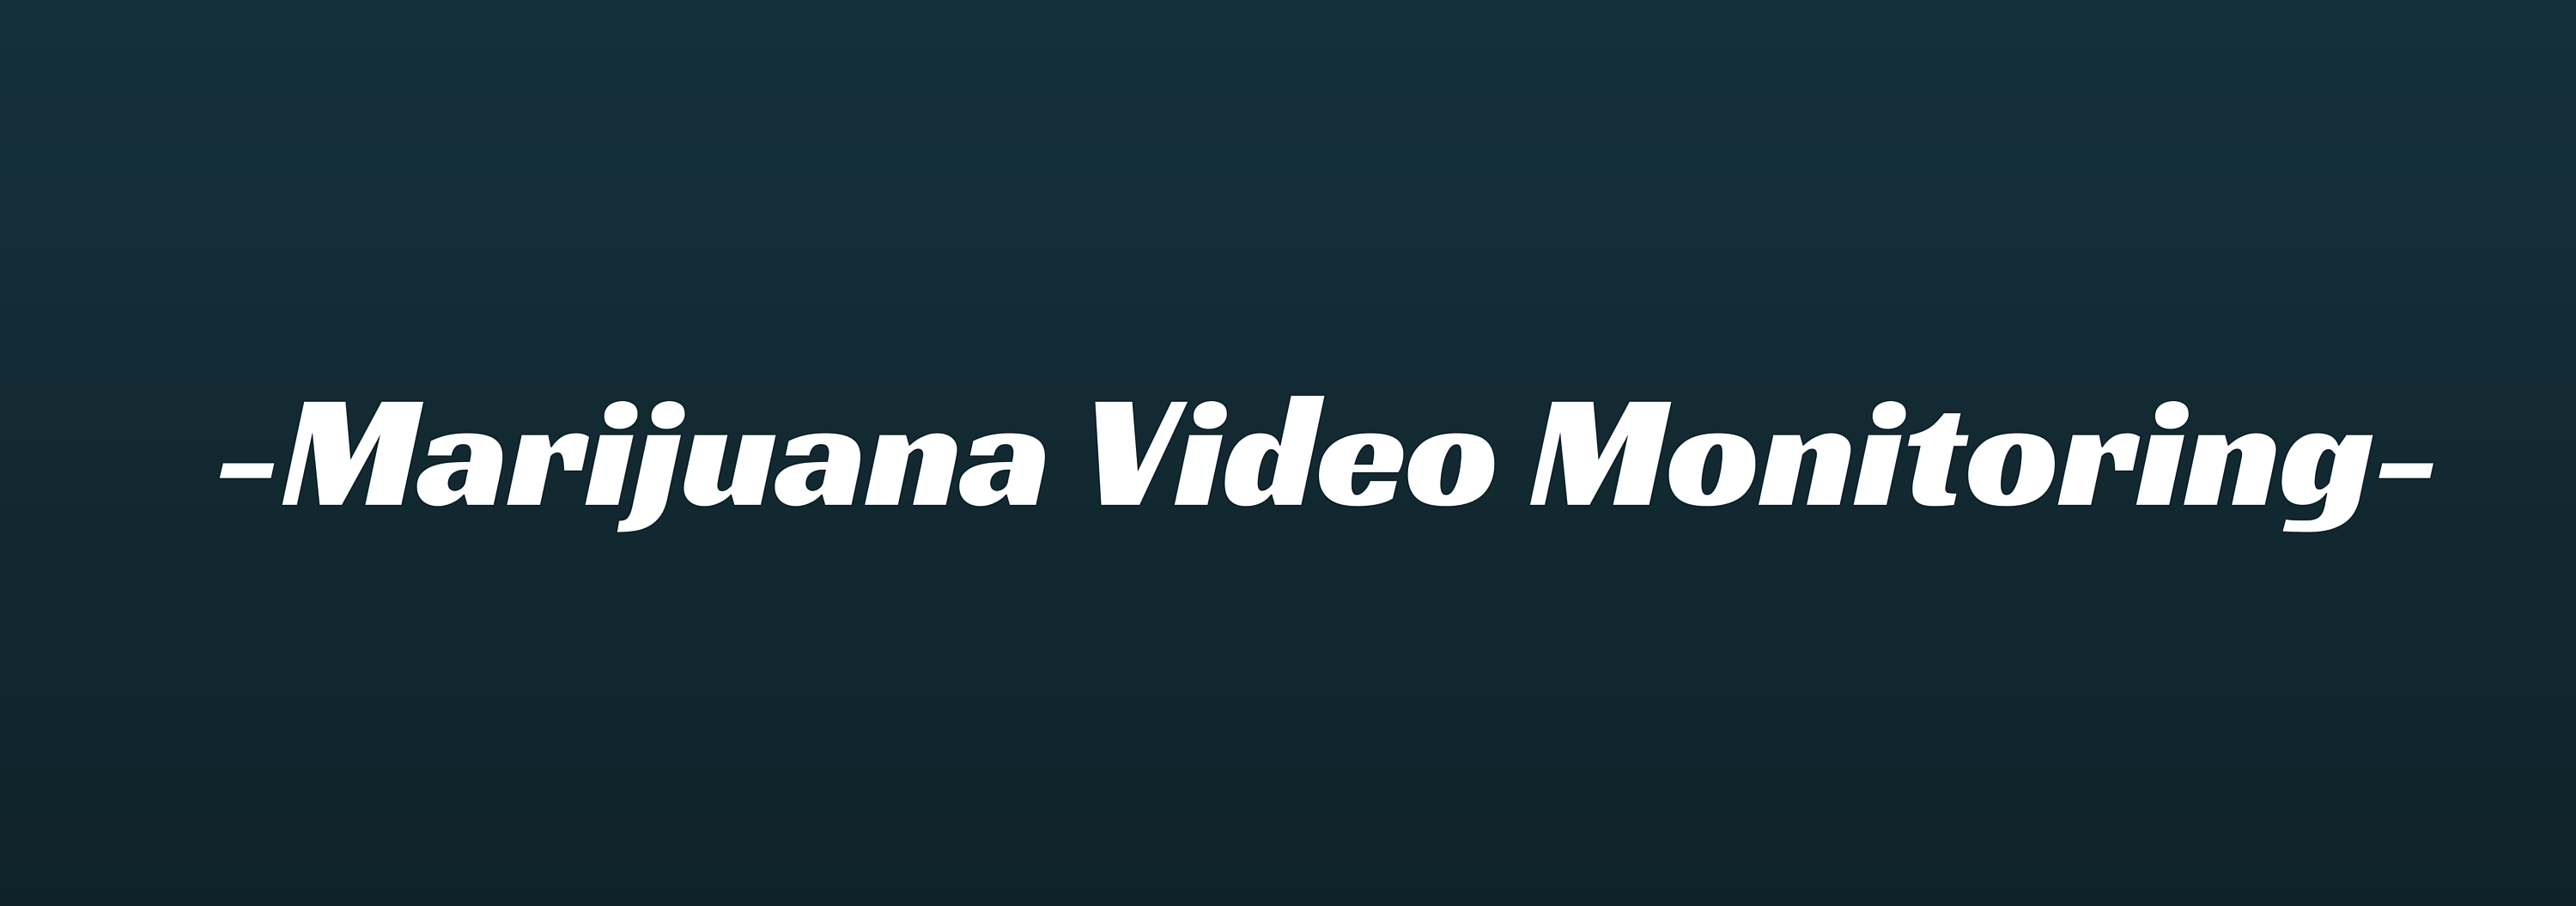 Marijuana Video Monitoring